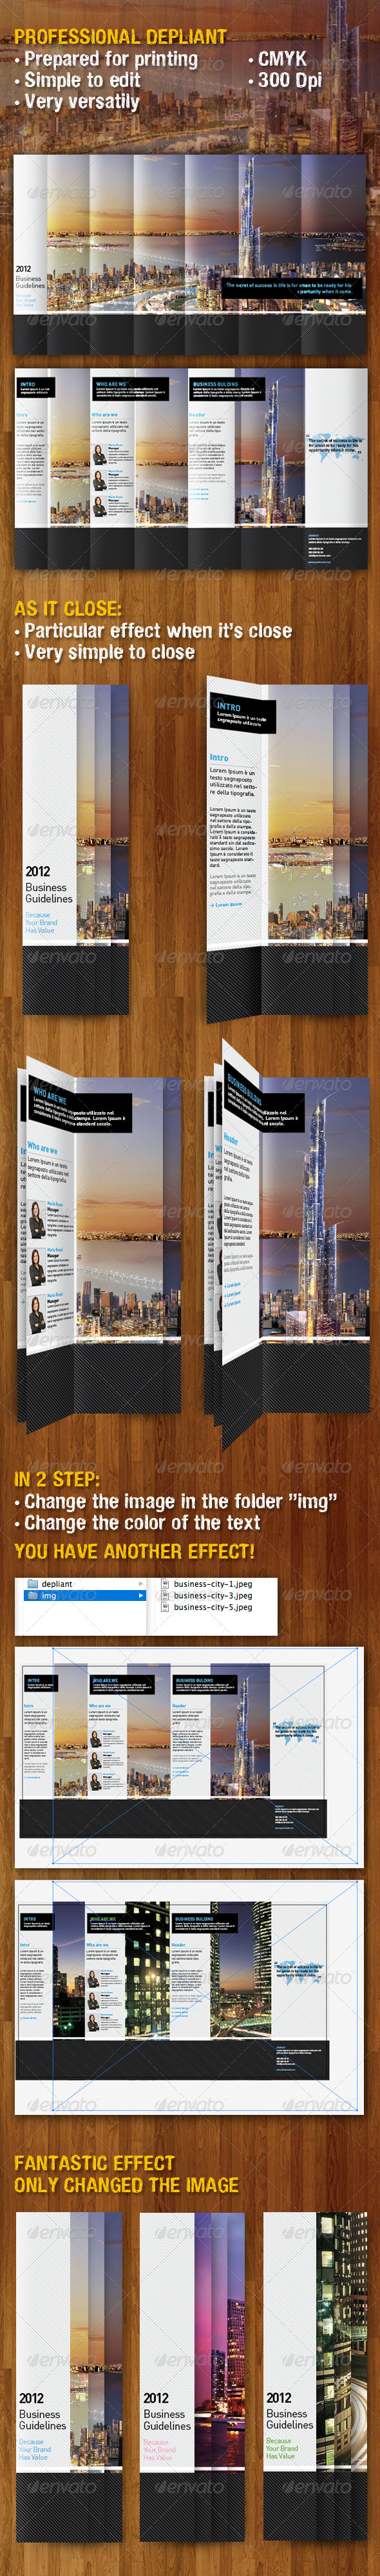 PROFESSIONAL DEPLIANT TEMPLATE - Informational Brochures